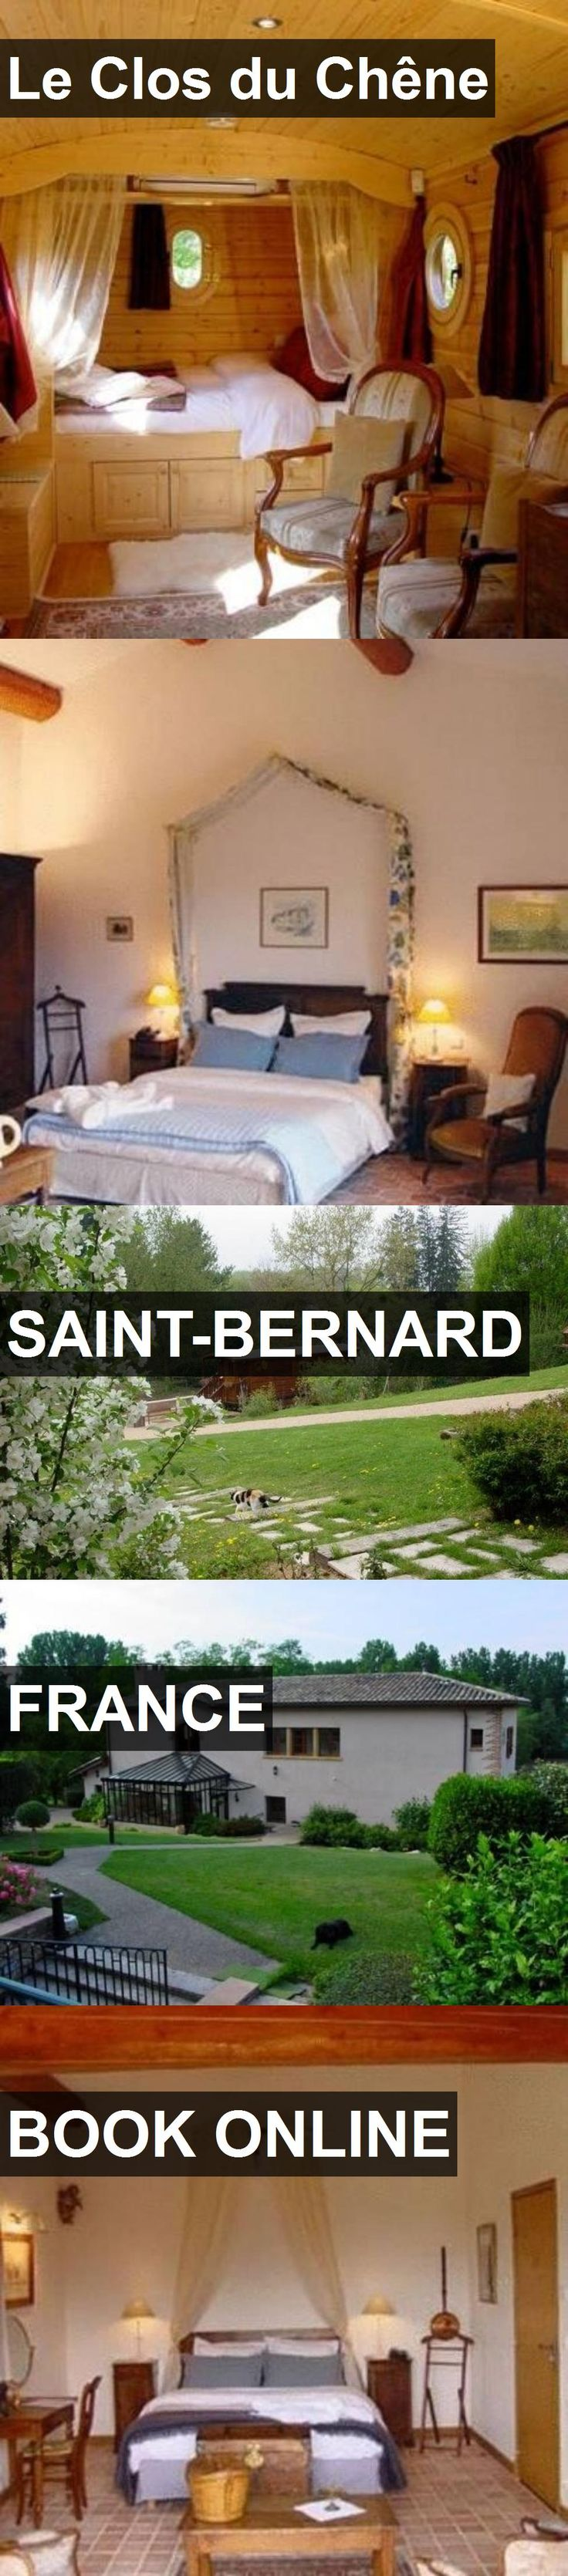 Hotel Le Clos du Chêne in Saint-Bernard, France. For more information, photos, reviews and best prices please follow the link. #France #Saint-Bernard #travel #vacation #hotel